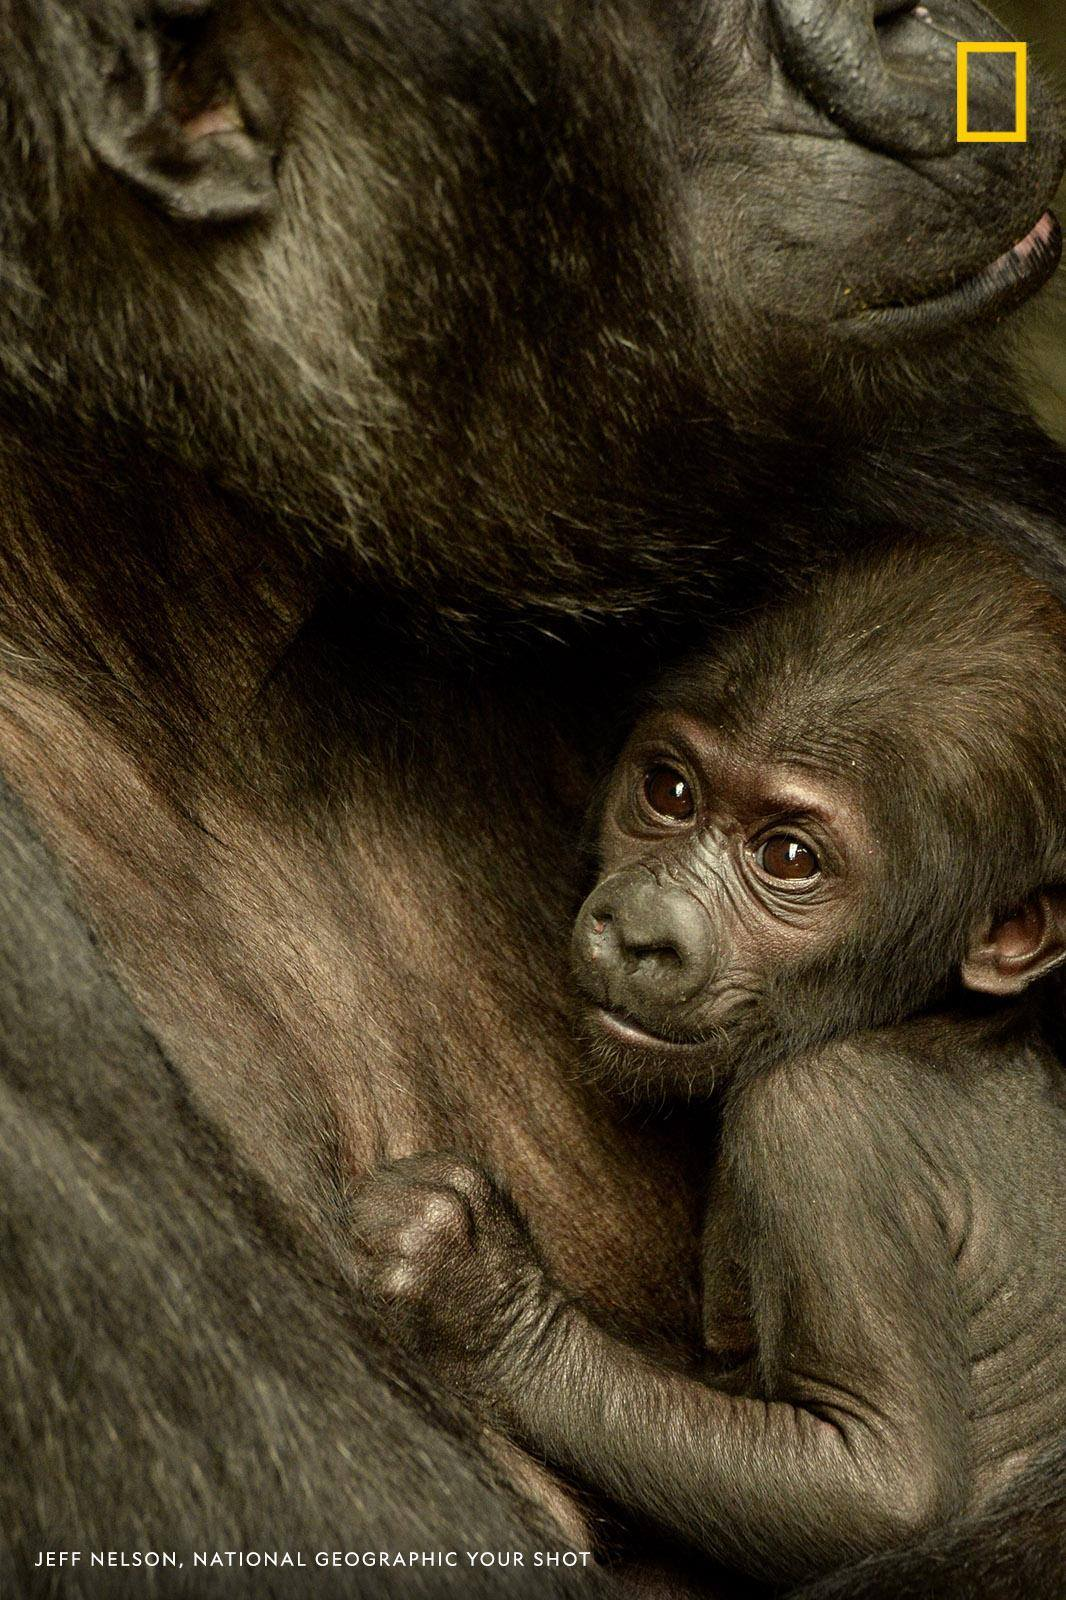 It's a full-time job watching over a baby gorilla, writes photographer Jeff Nelson who captured this portrait of Ali and her mom. https://on.natgeo.com/2QQwV9e